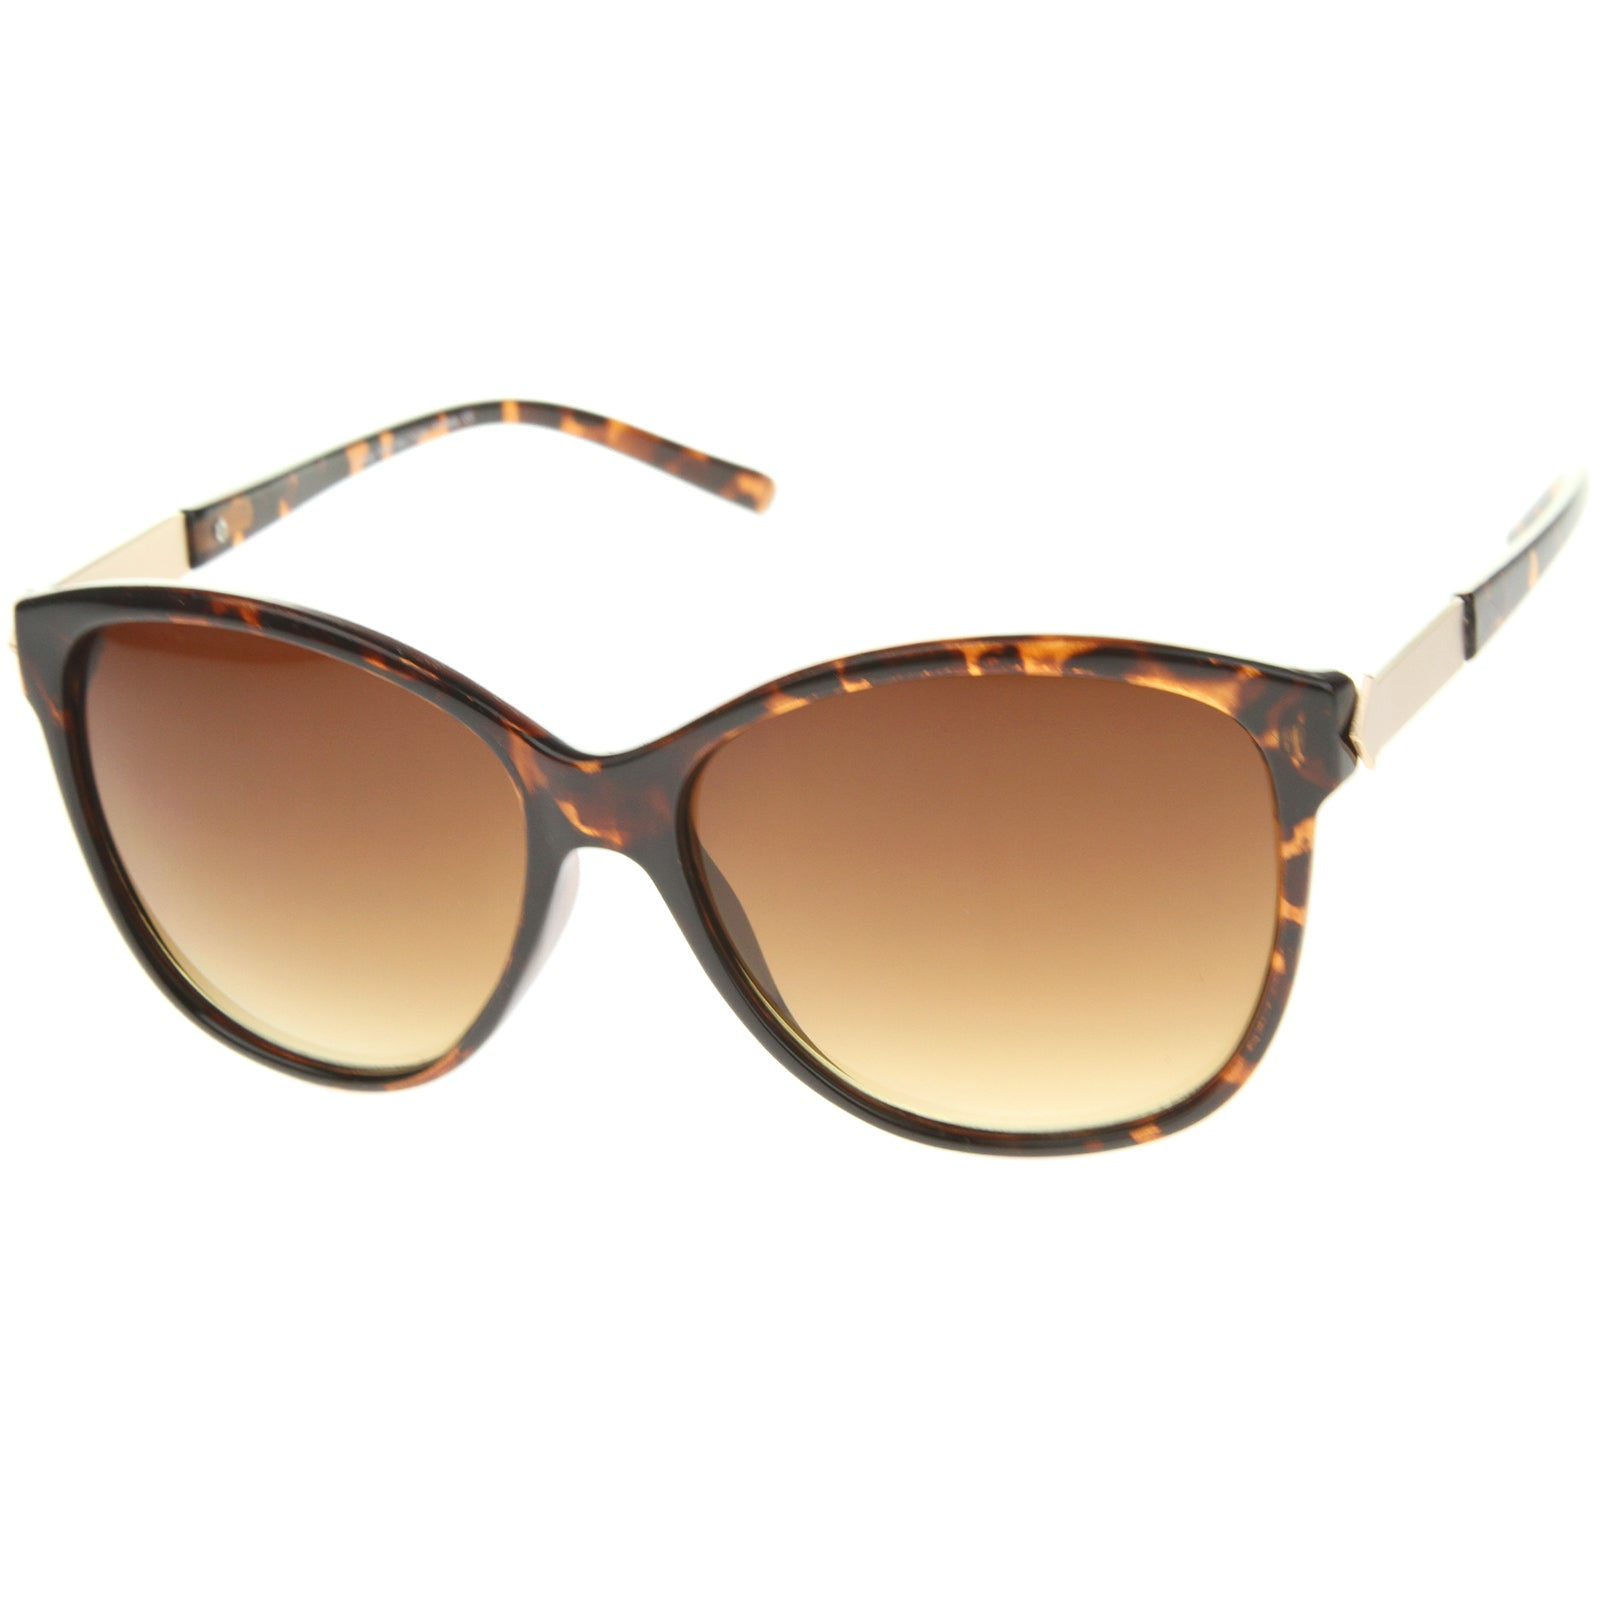 Women's Glam Fashion Metal Temple Oversize Cat Eye Sunglasses 59mm - sunglass.la - 10